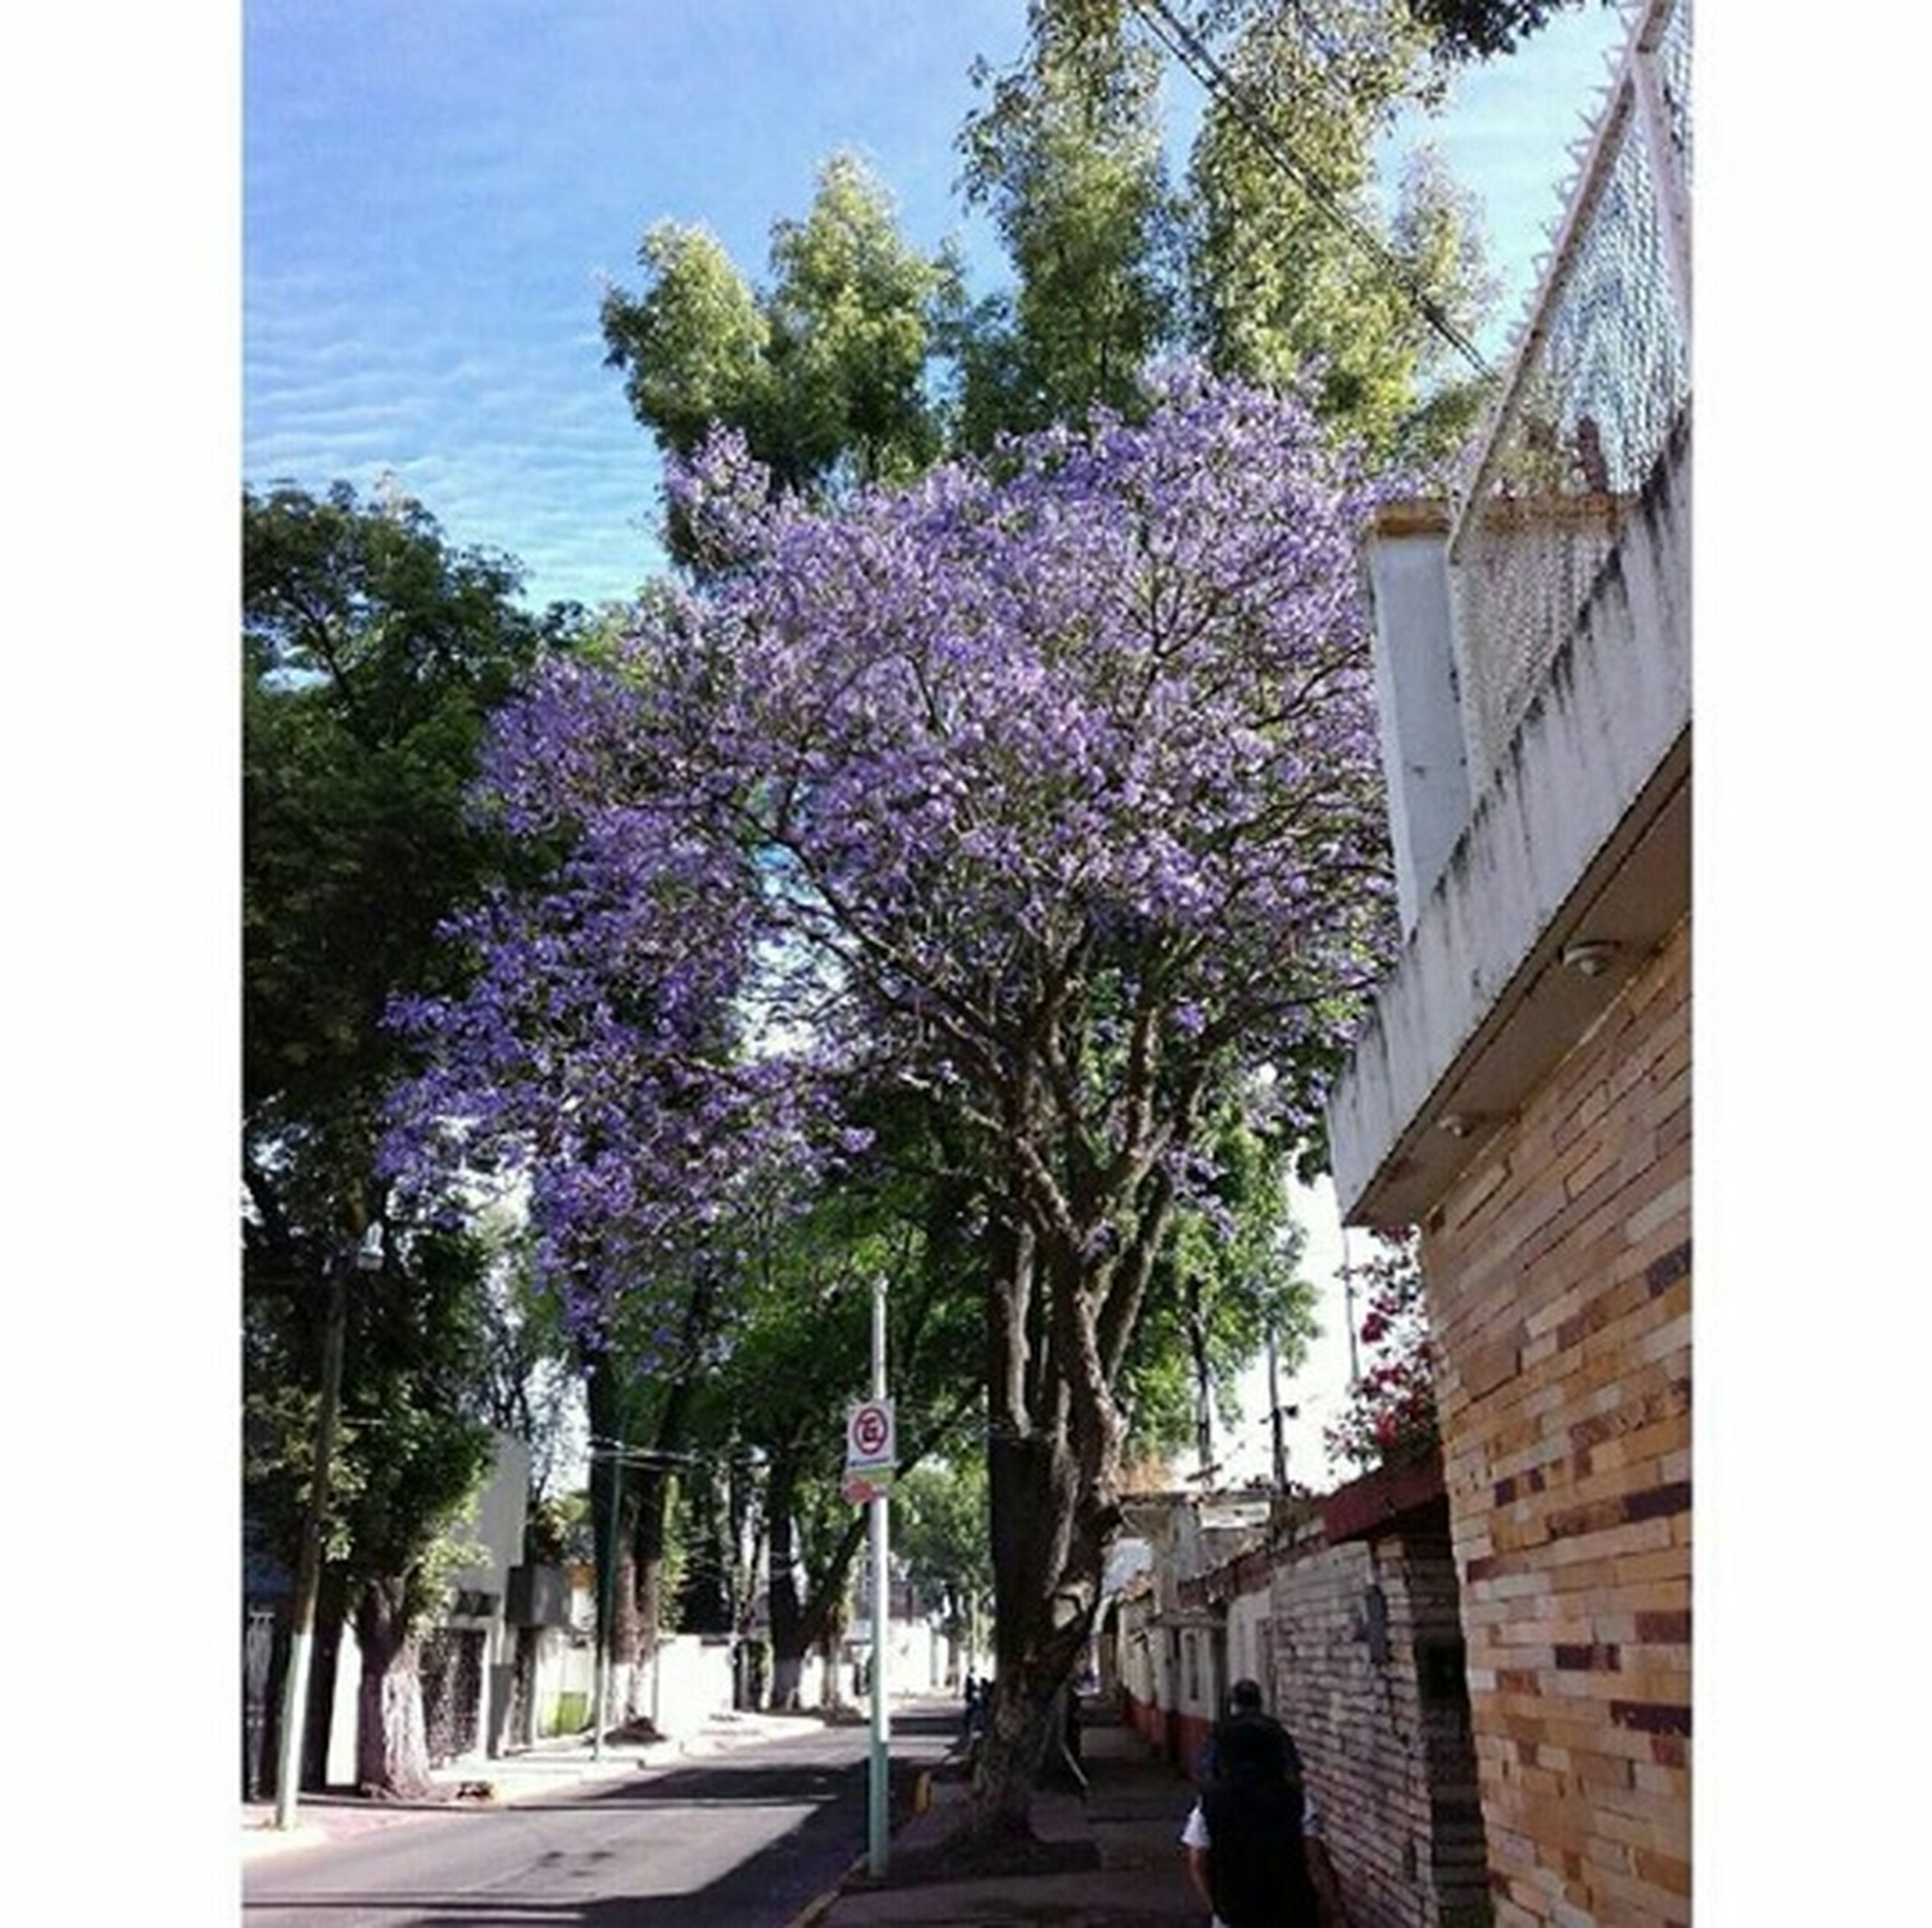 tree, growth, flower, nature, purple, built structure, building exterior, architecture, day, outdoors, no people, sky